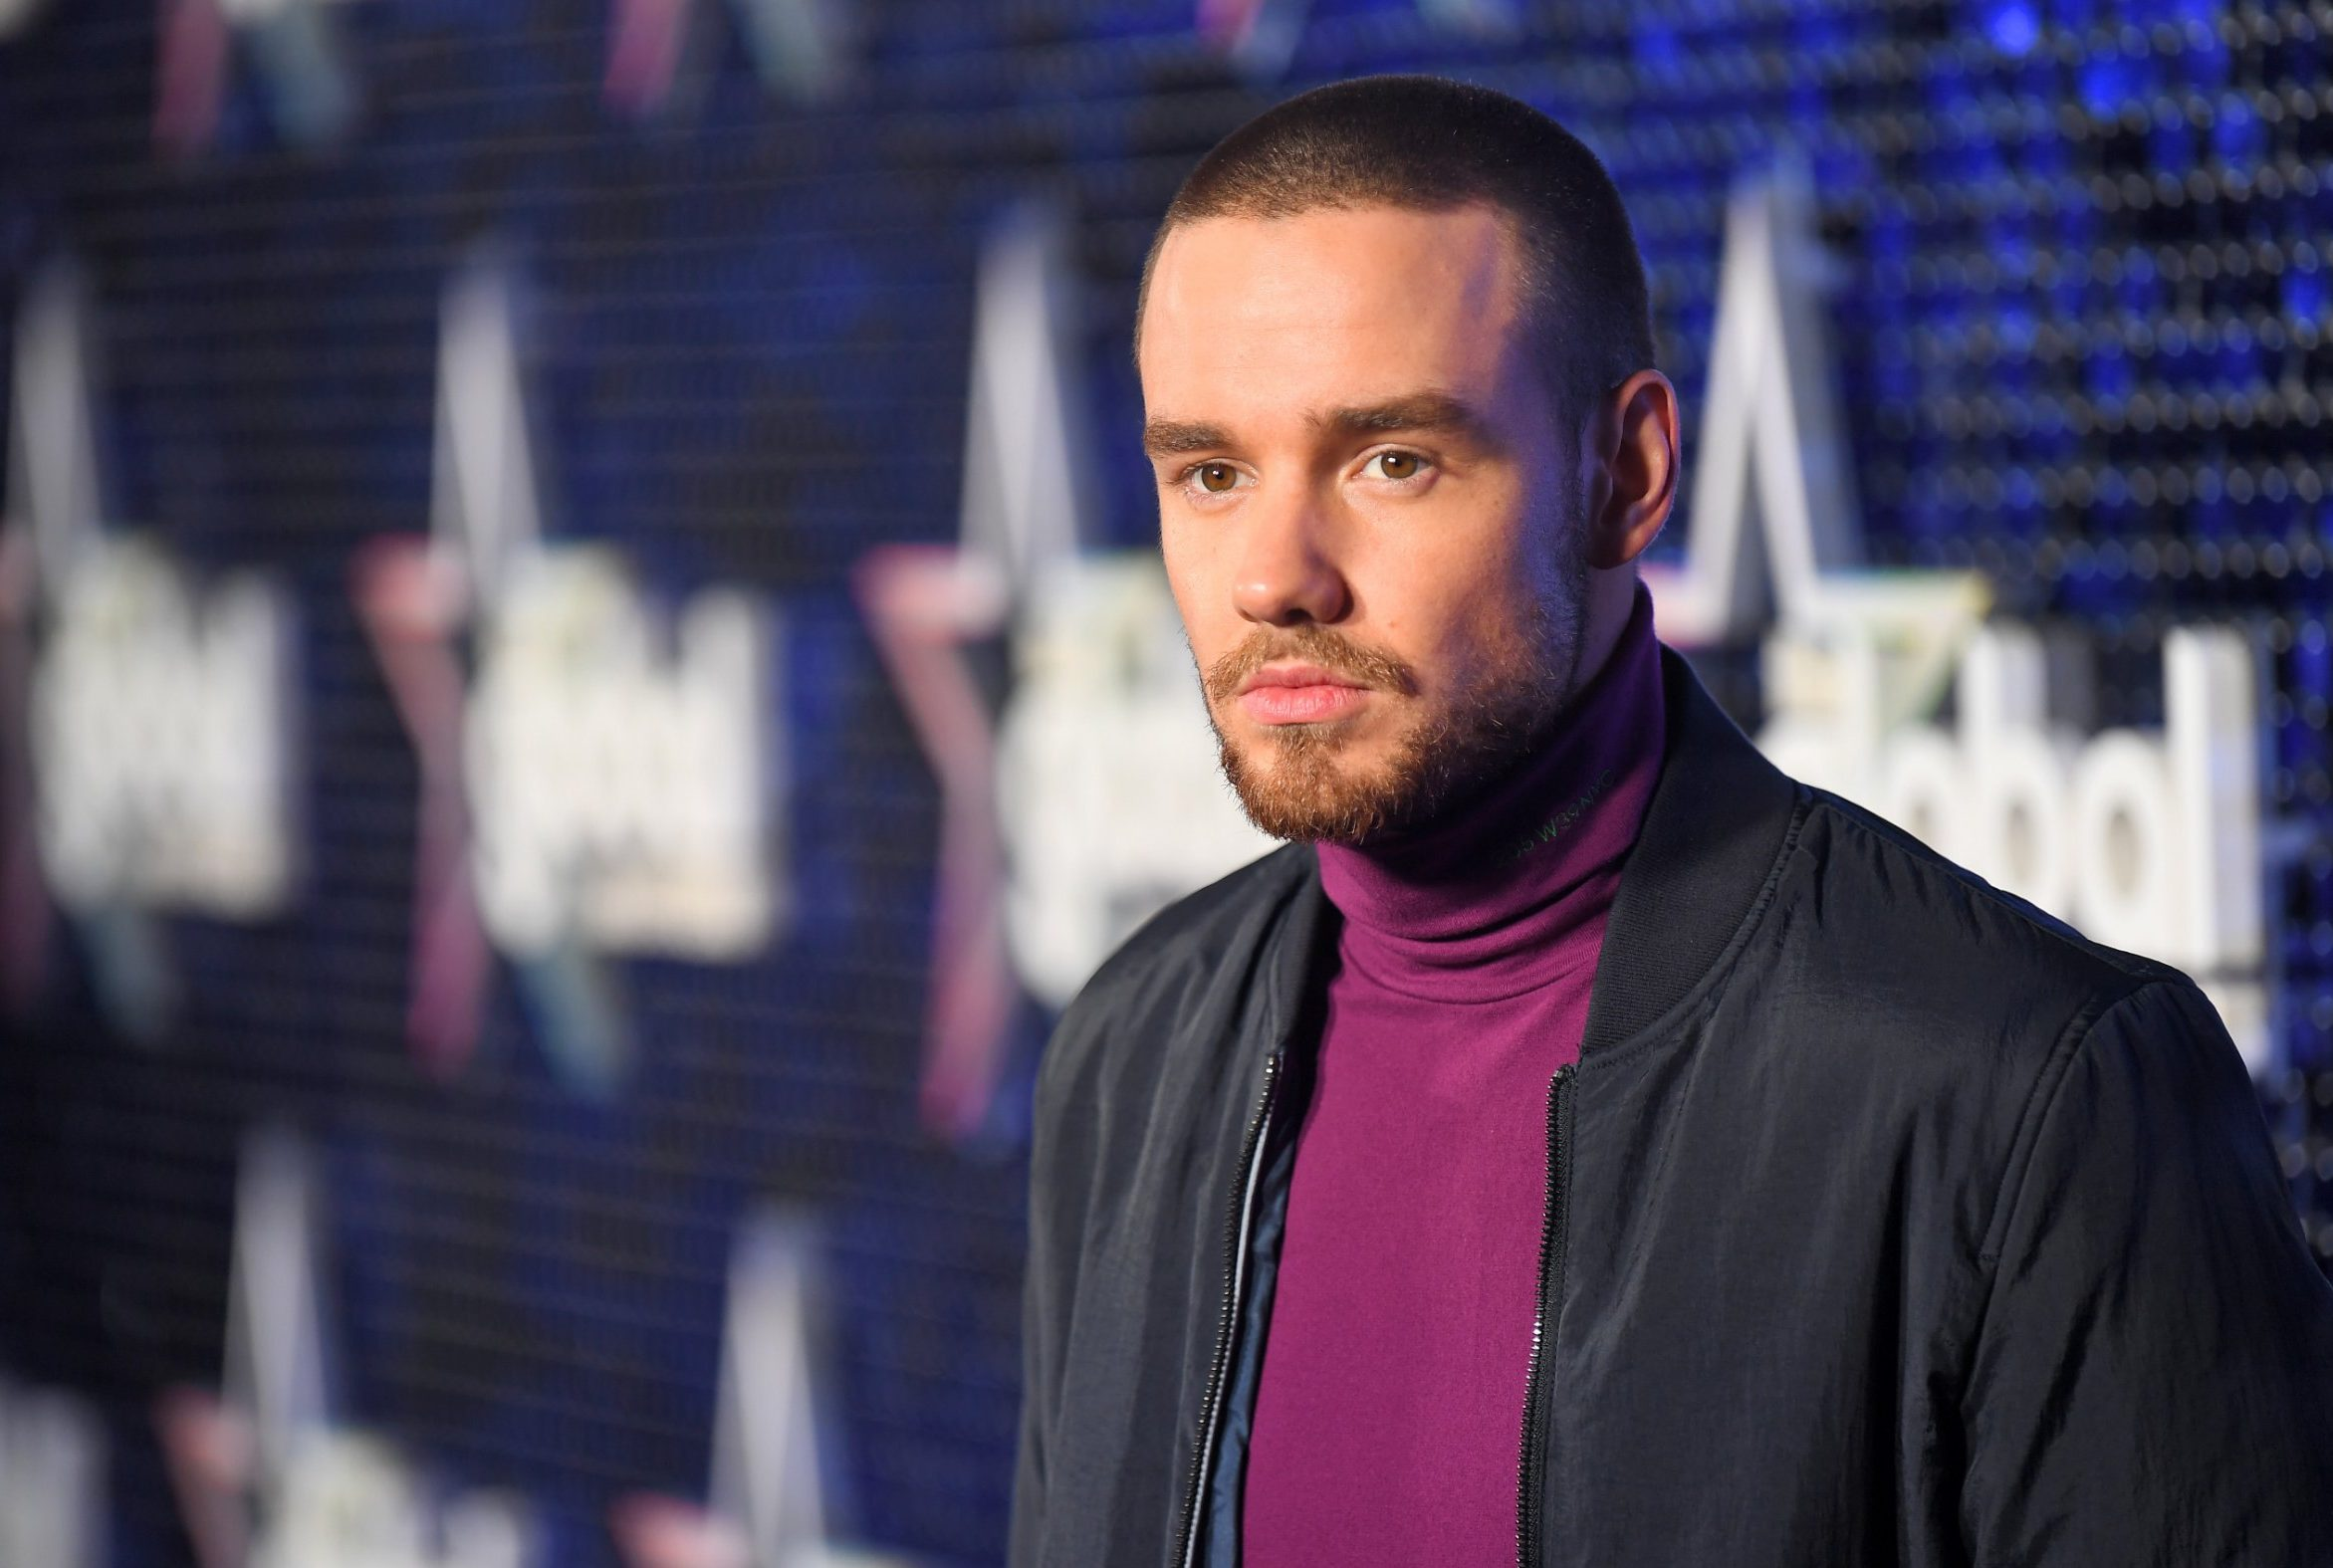 Liam Payne's company made just £6k in profits last year – 180 times less than Cheryl's business